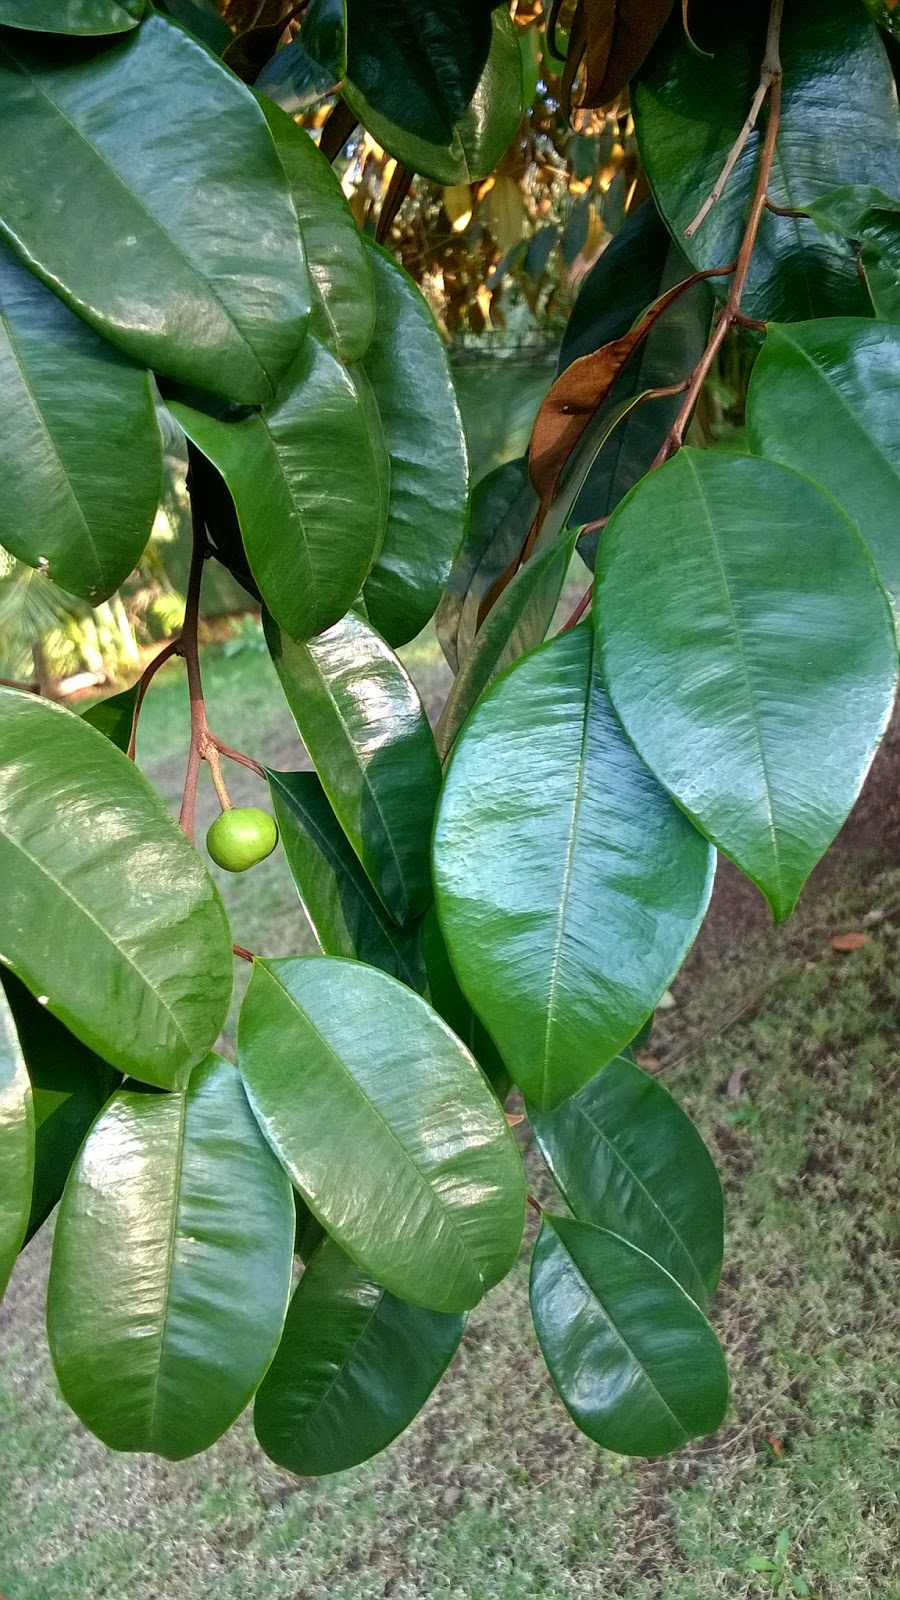 leaves, pune, identification